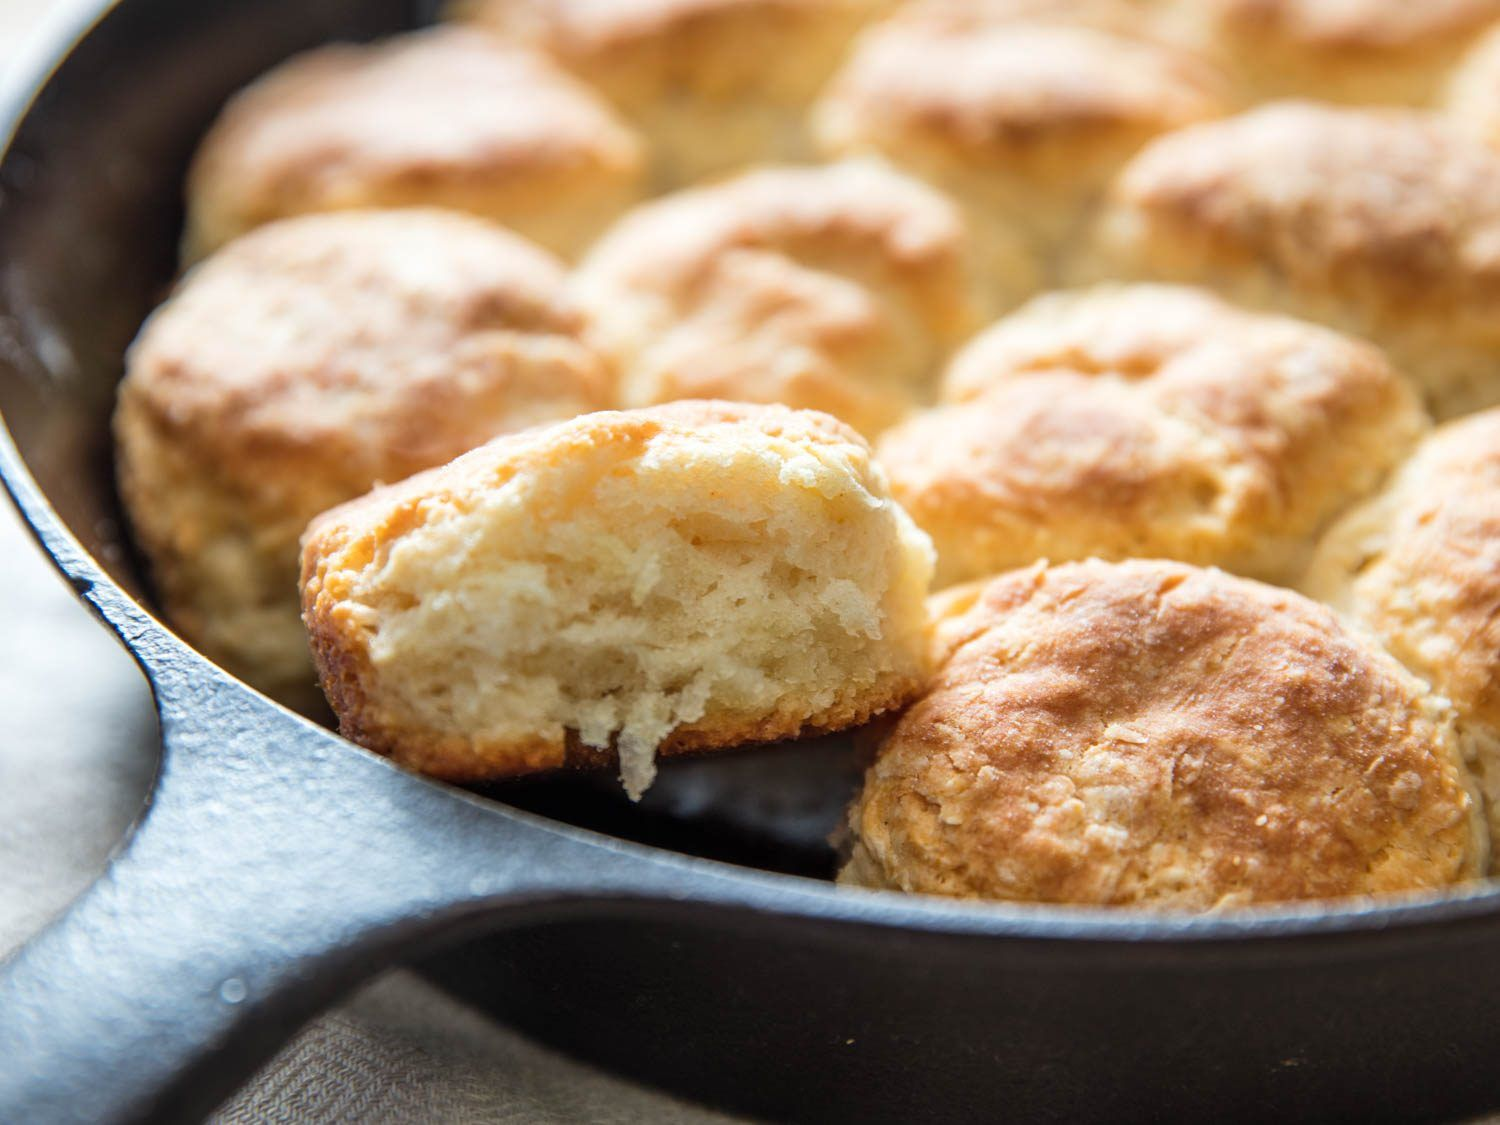 How To Make Light And Fluffy Biscuits Without Buttermilk Homemade Biscuits Recipe Fluffy Biscuits Easy Homemade Biscuits